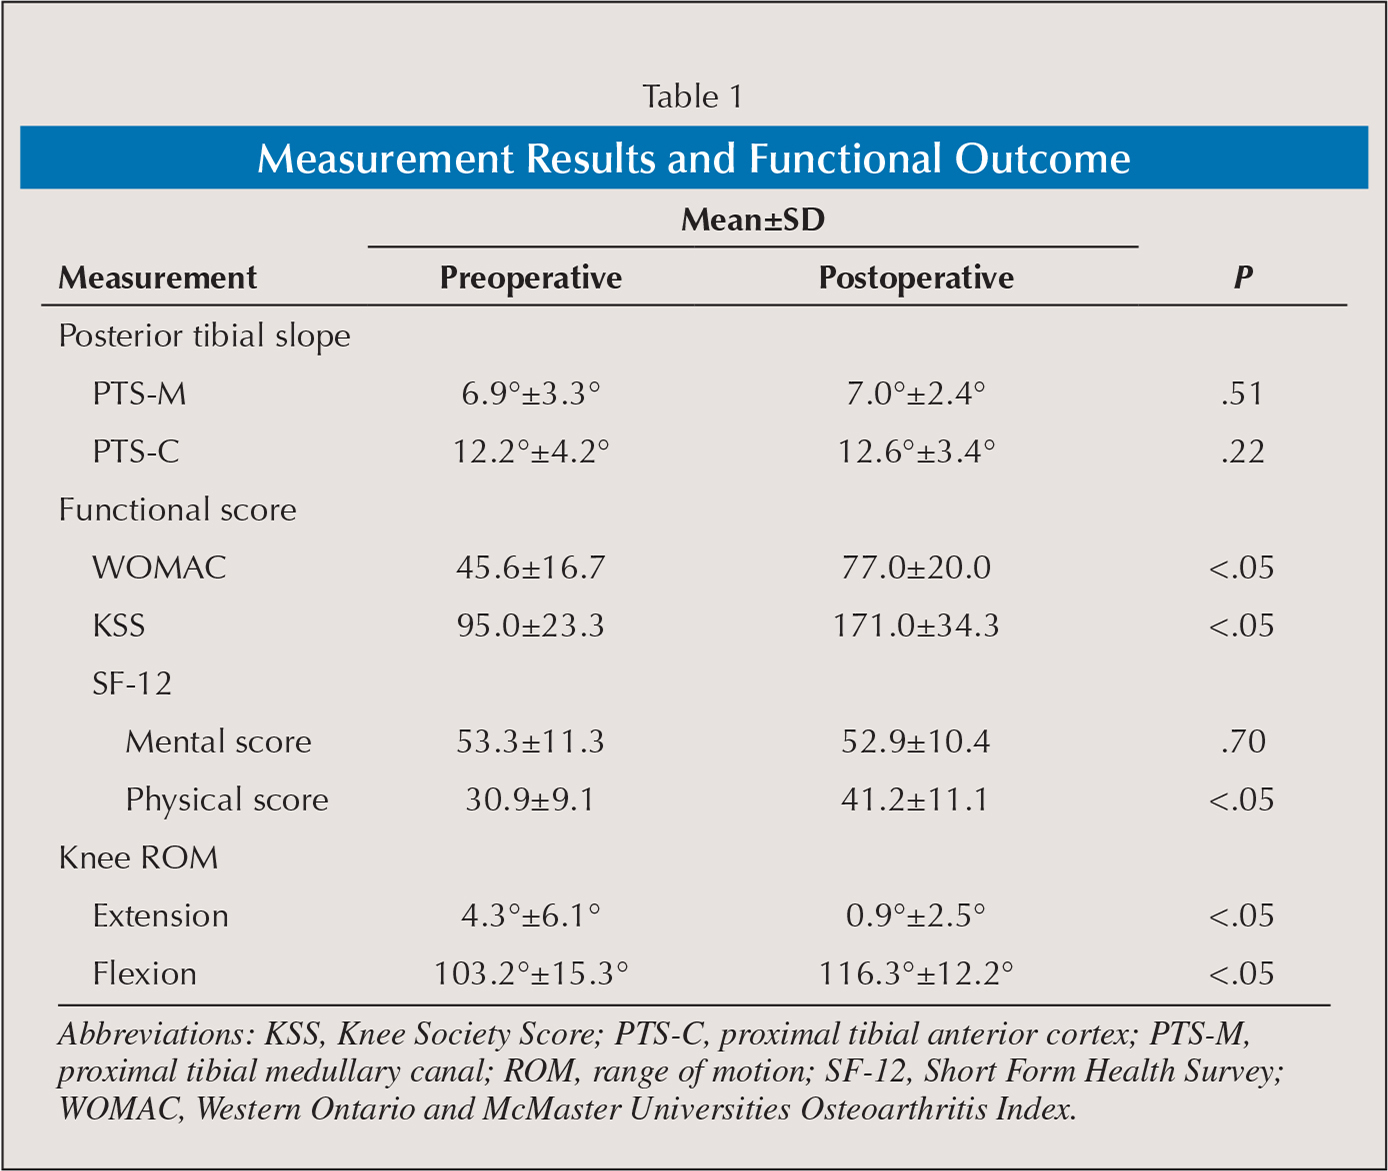 Measurement Results and Functional Outcome